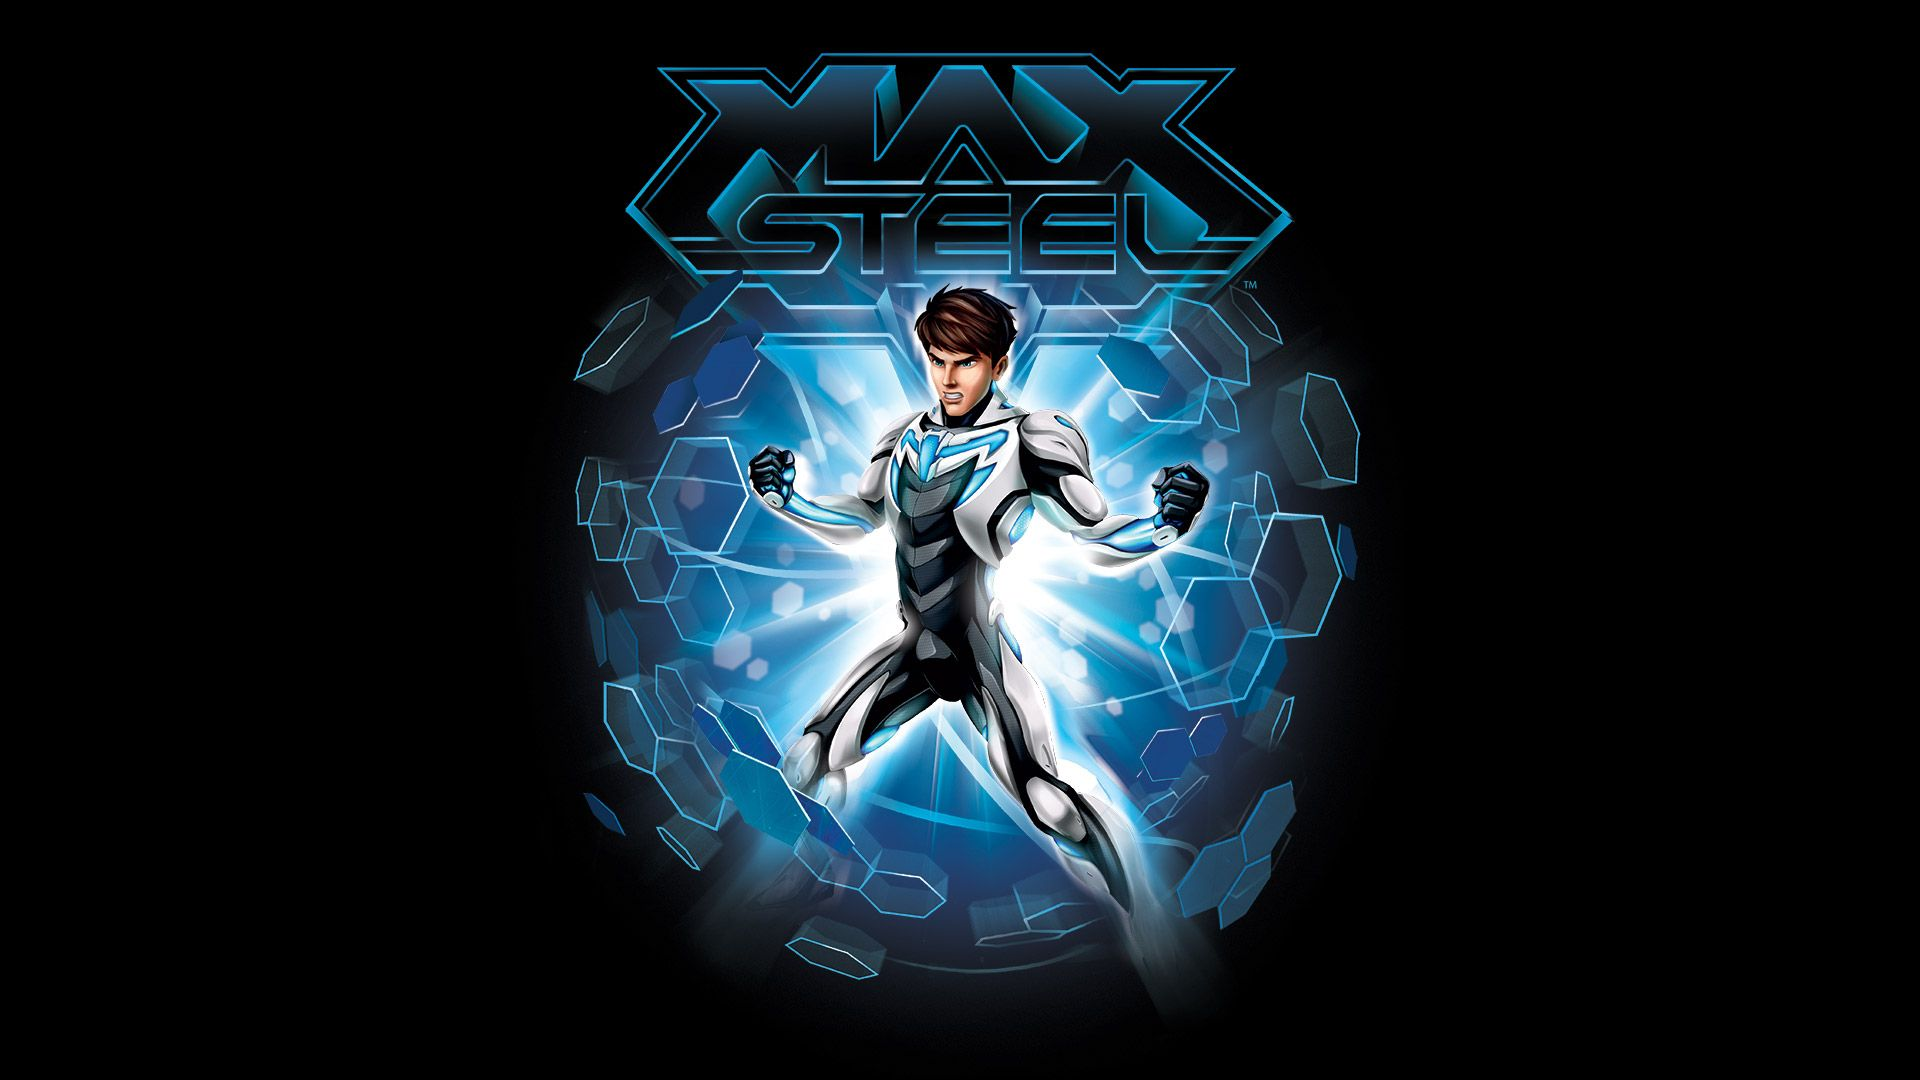 max steel 2015 movie wallpaper hd free download for john